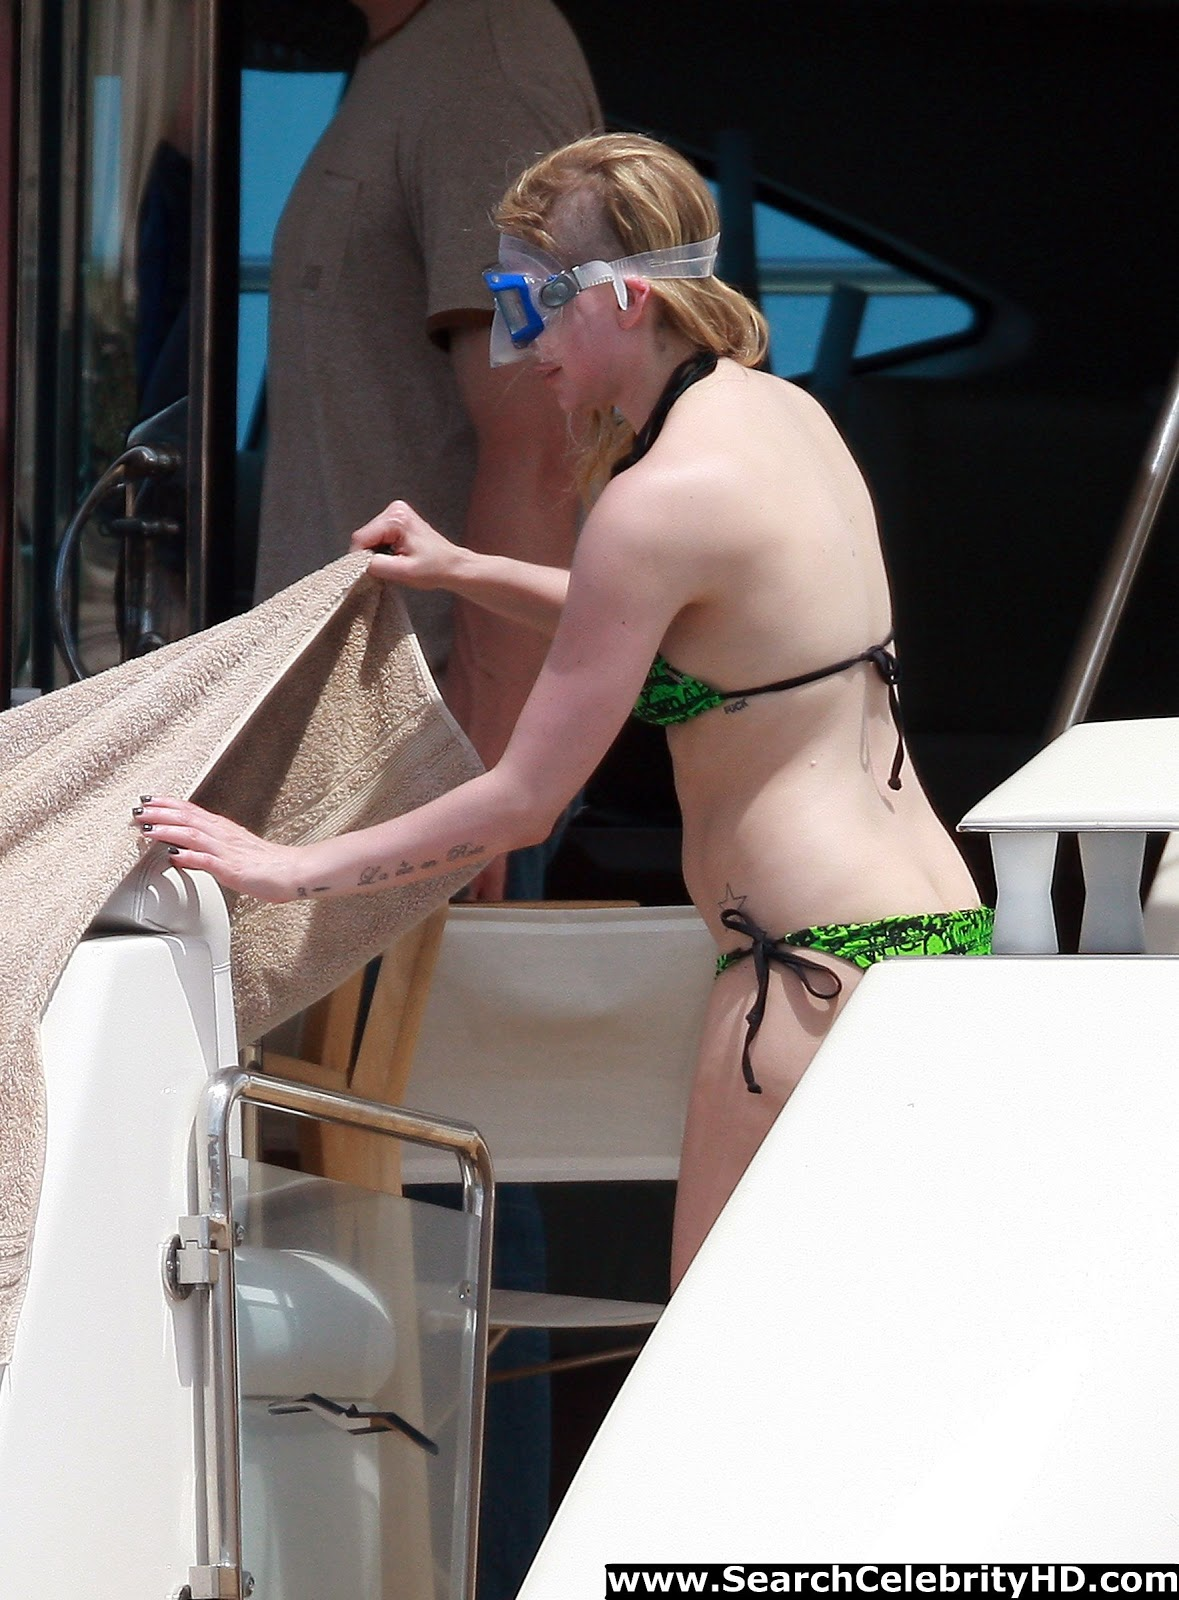 Avril in bikini